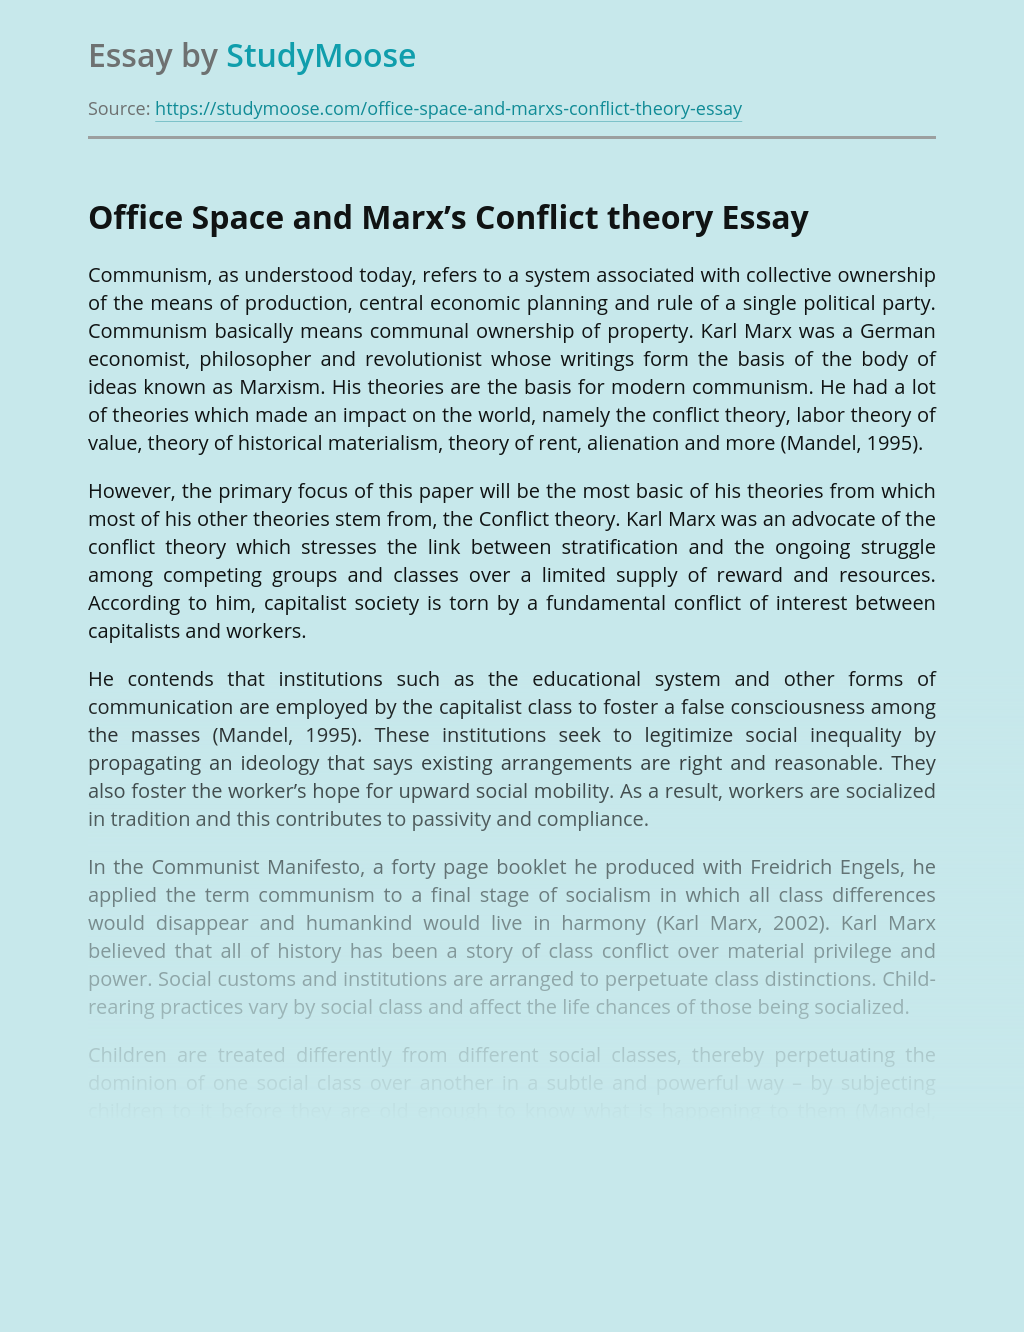 Office Space and Marx's Conflict theory